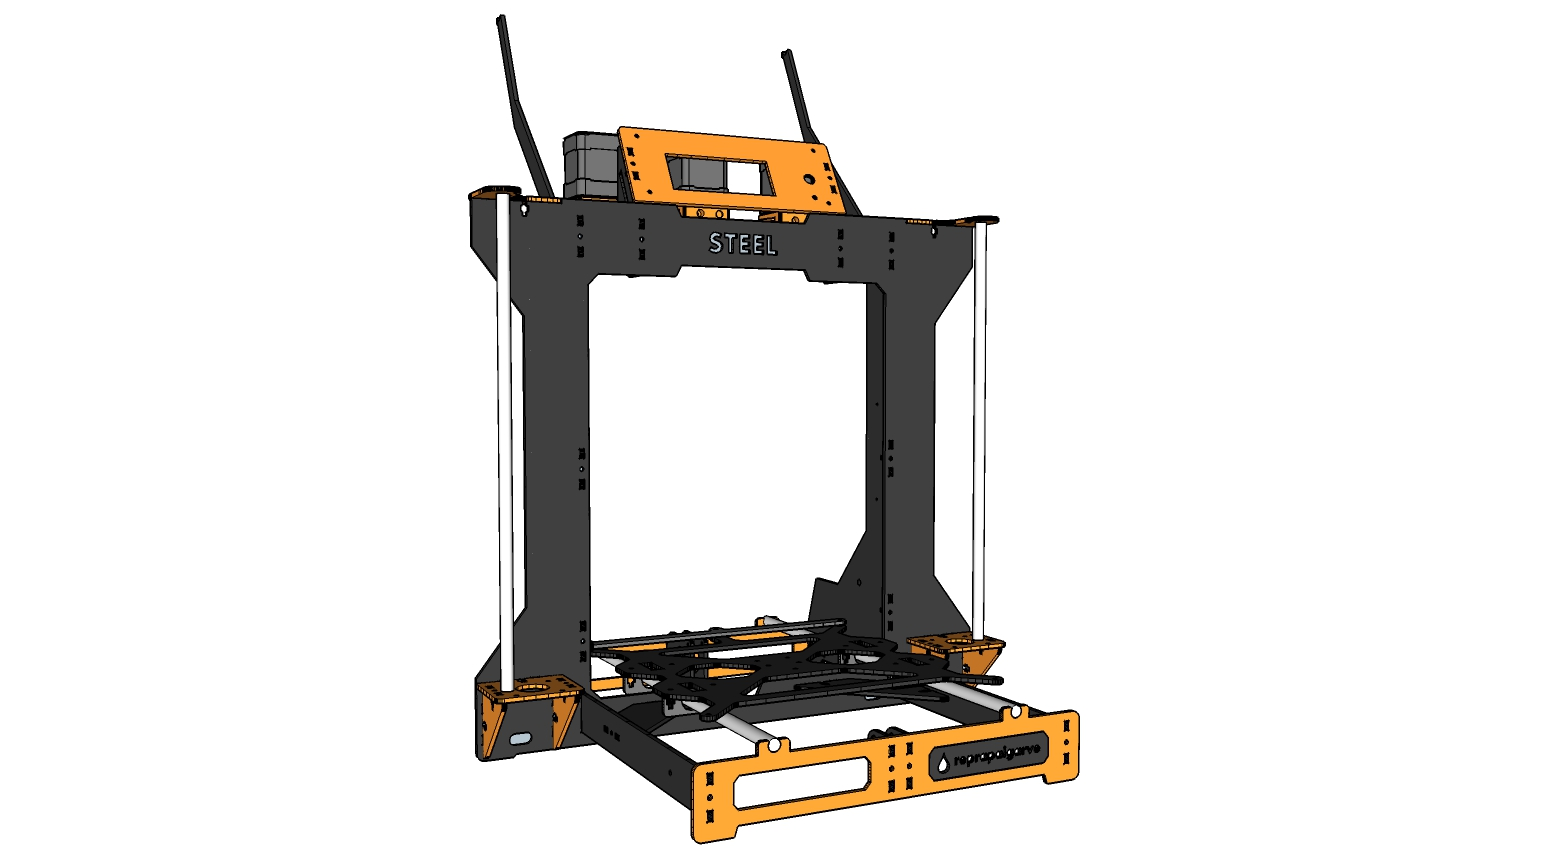 Picture of RGB STEEL - Low Cost, Steel Frame, Color Mixing 3D Printer